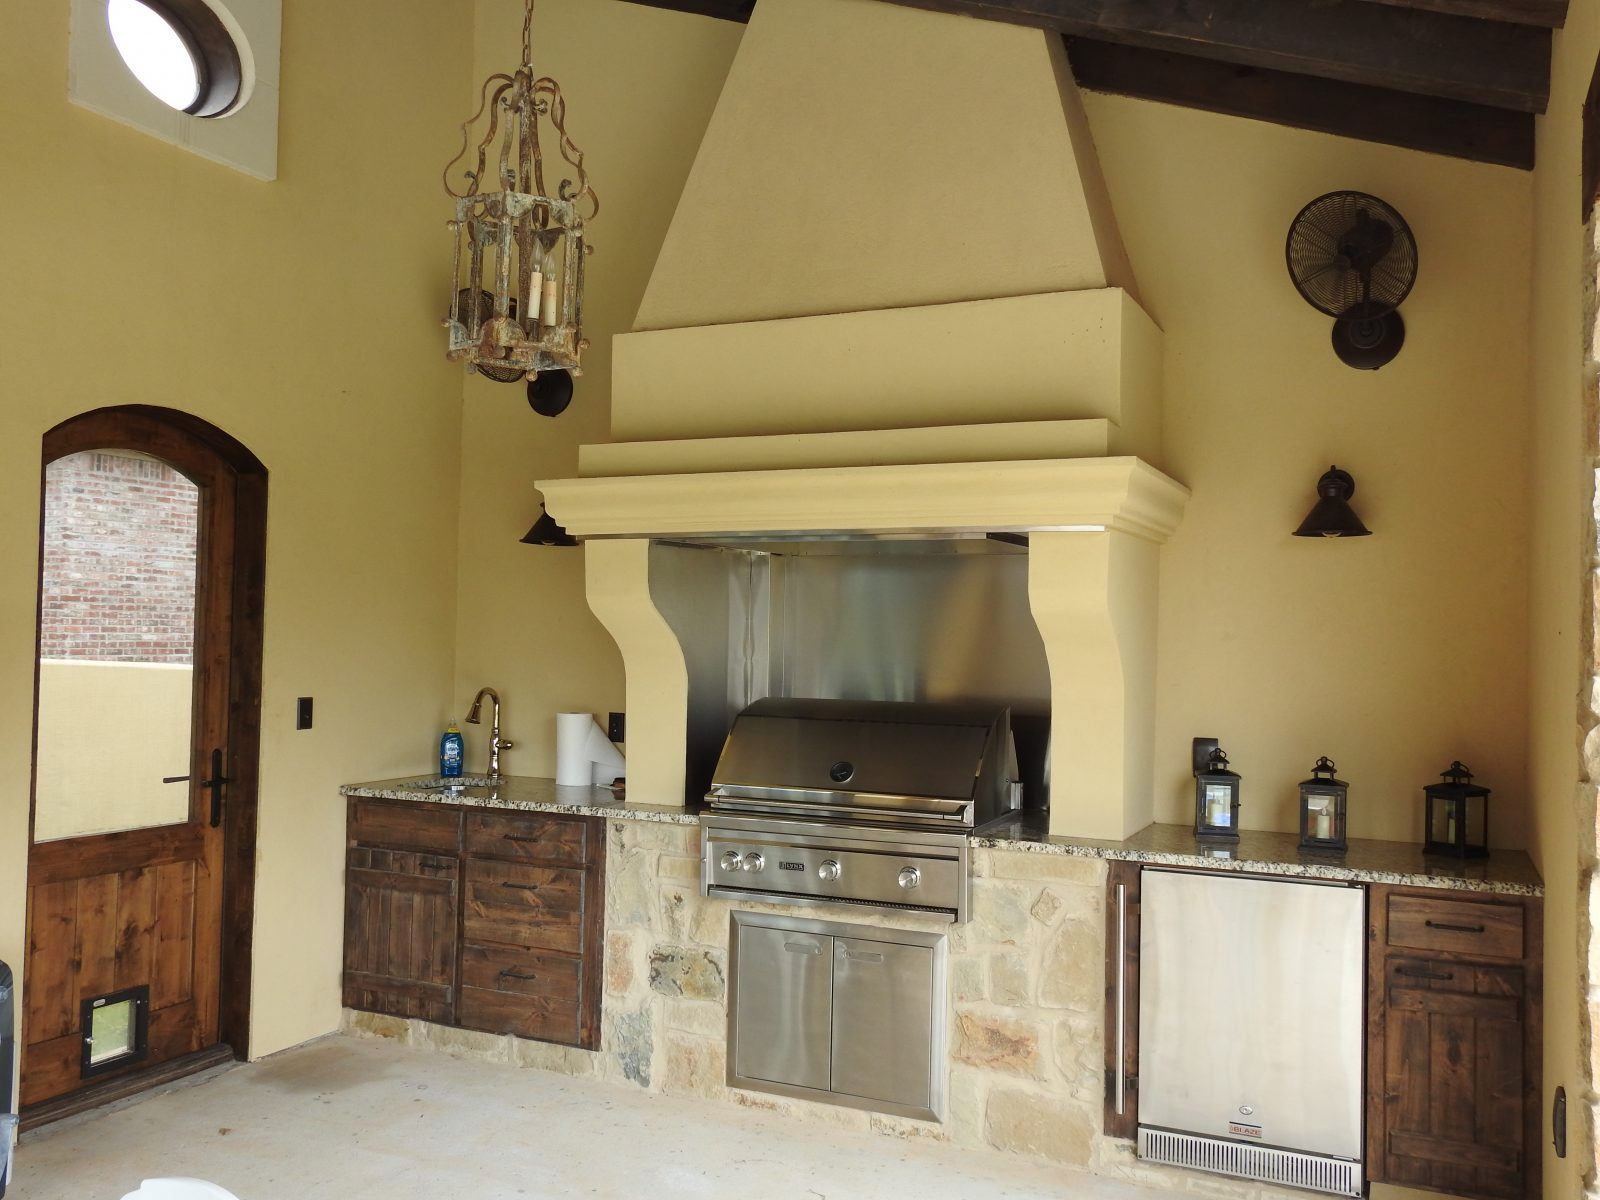 Stucco outdoor kitchen Shreveport Construction Remodeling Mias Stucco and Stone